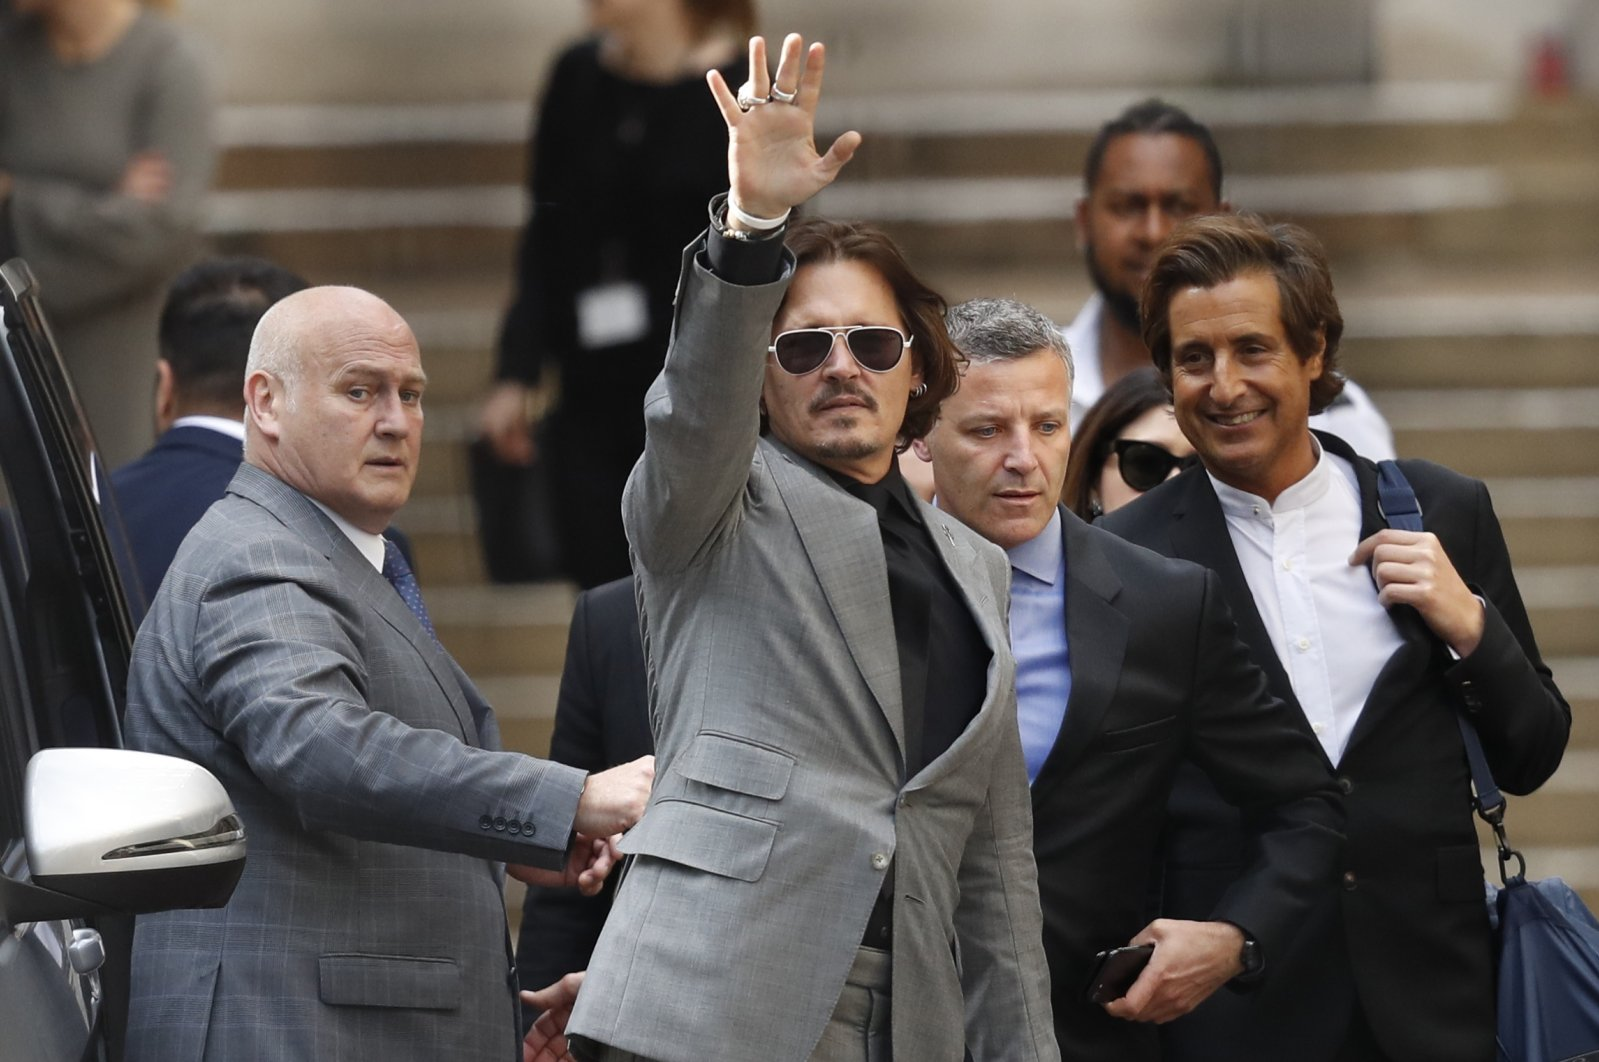 U.S. actor Johnny Depp waves as he leaves after the end of the trial at the High Court in London, July 28, 2020. (AP Photo)